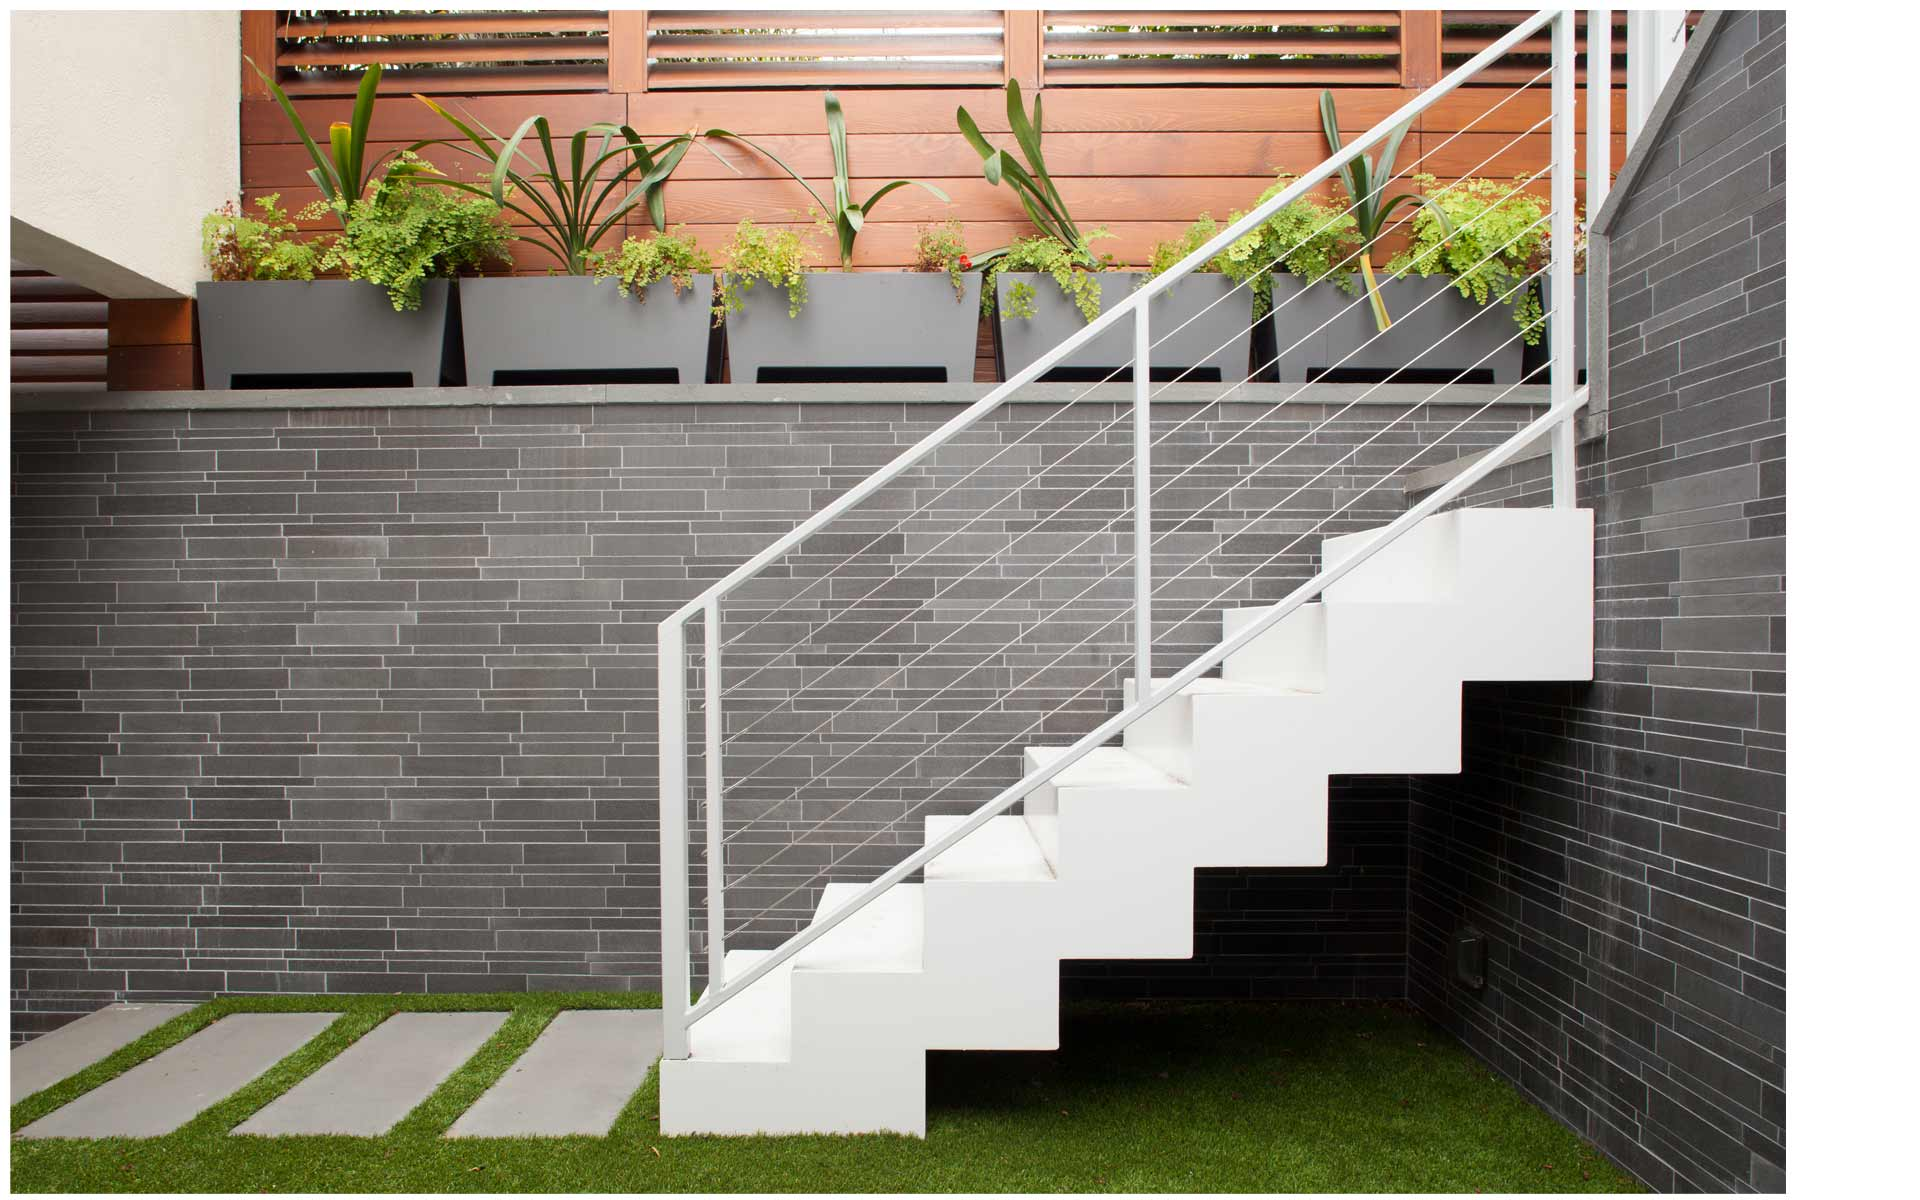 Norstone Grey Basalt Lynia Interlocking Tile Feature Wall in San Francisco Interior Courtyard showing tile pattern on wall